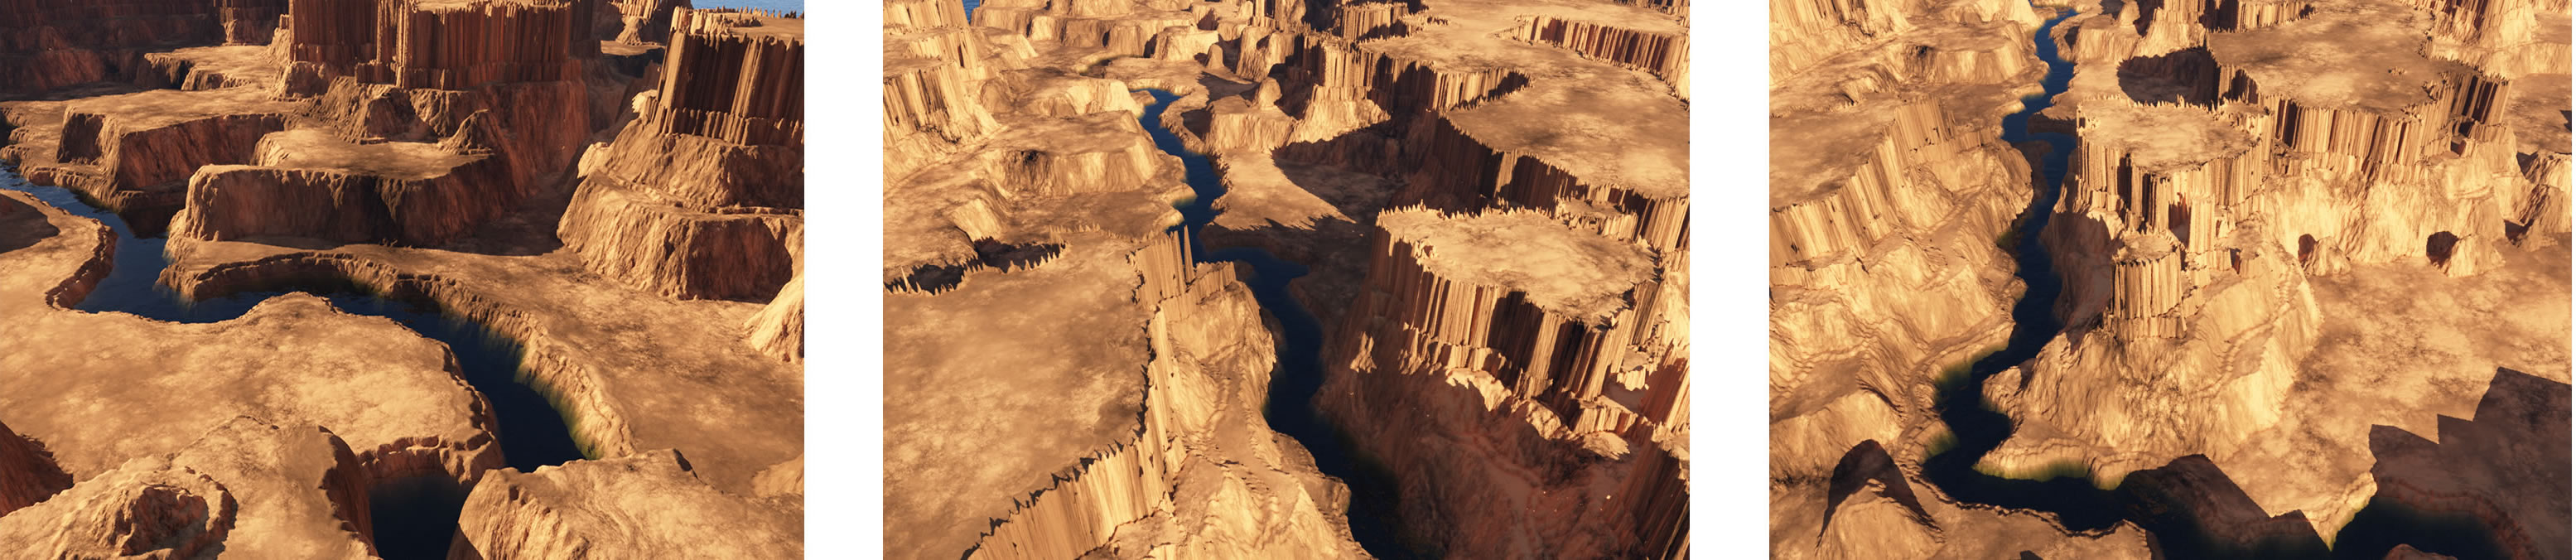 Procedural Generation of 3D Canyons